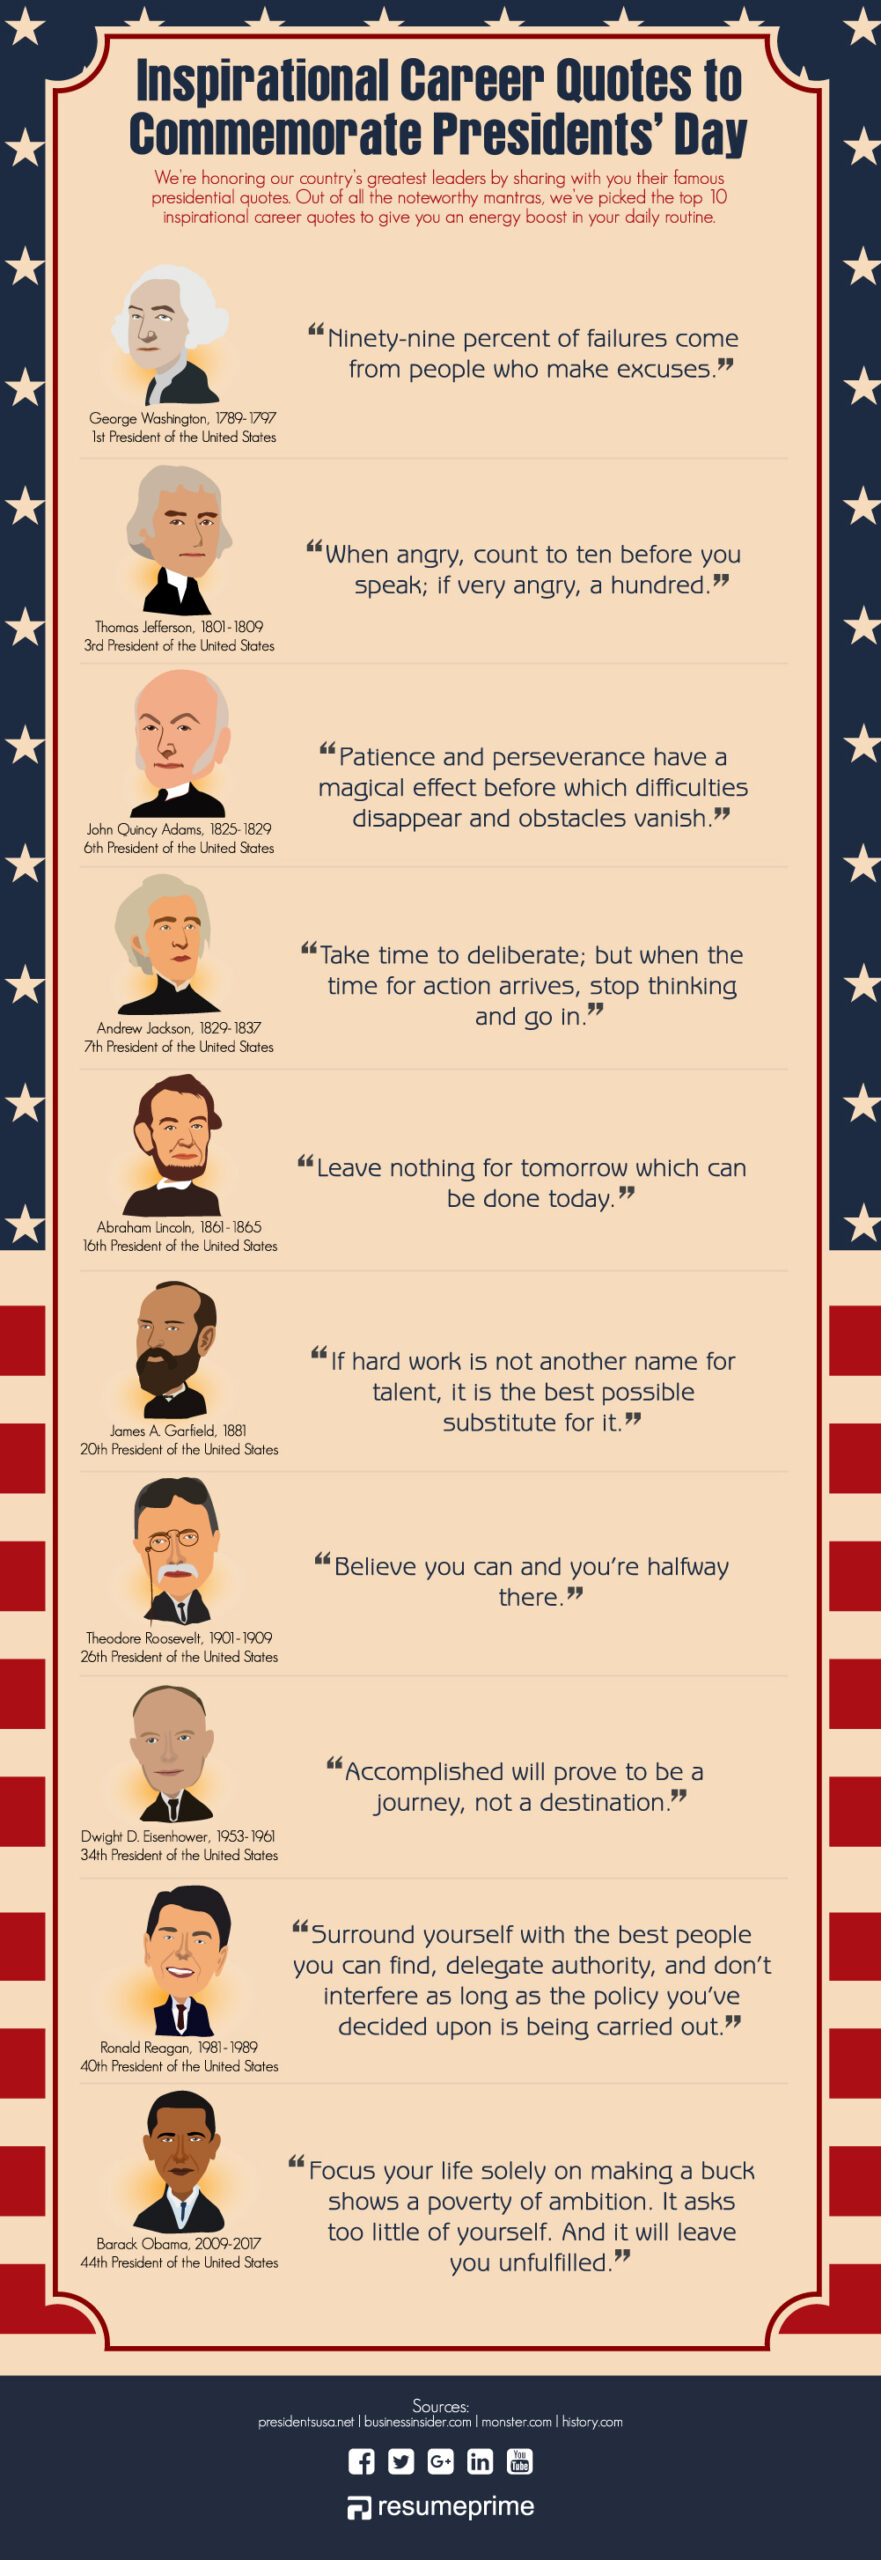 Infographic listing the inspirational career quotes to commemorate President's Day